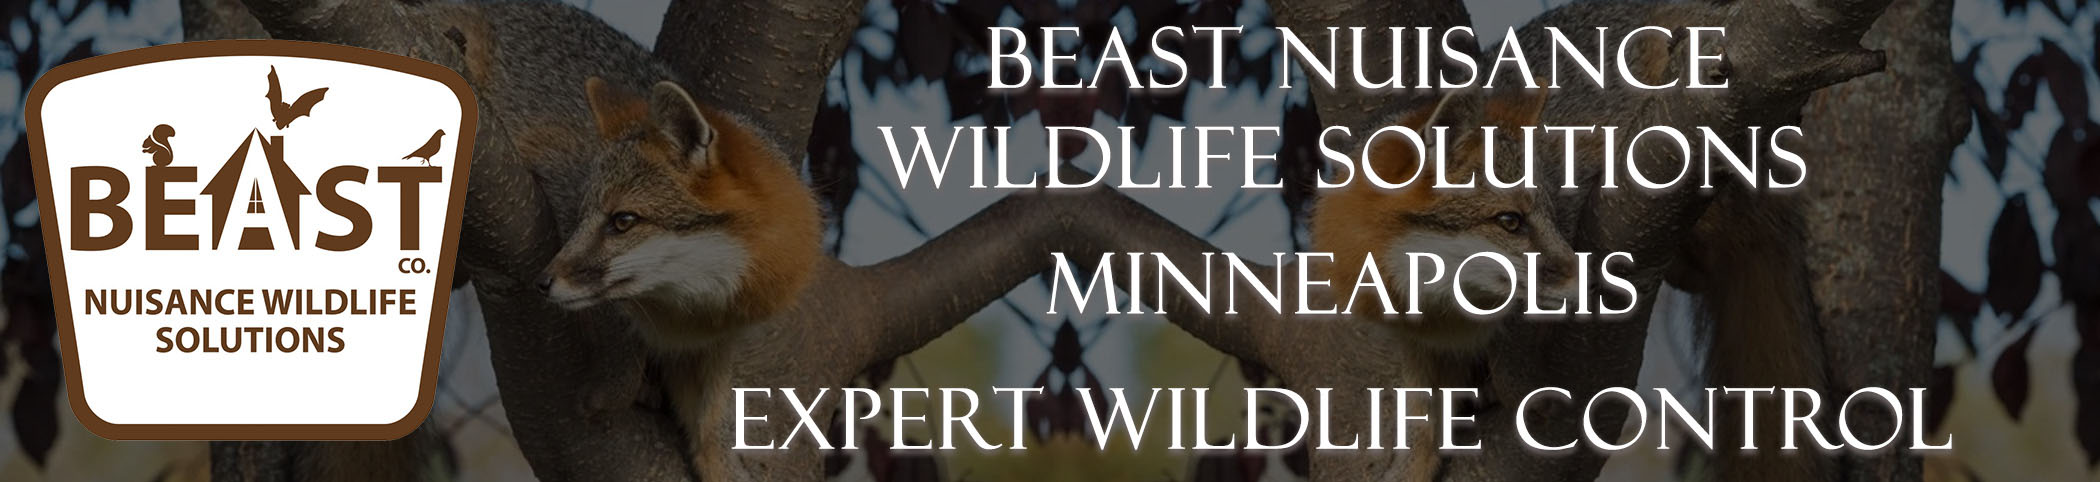 Beast Nuisance Wildlife Solutions